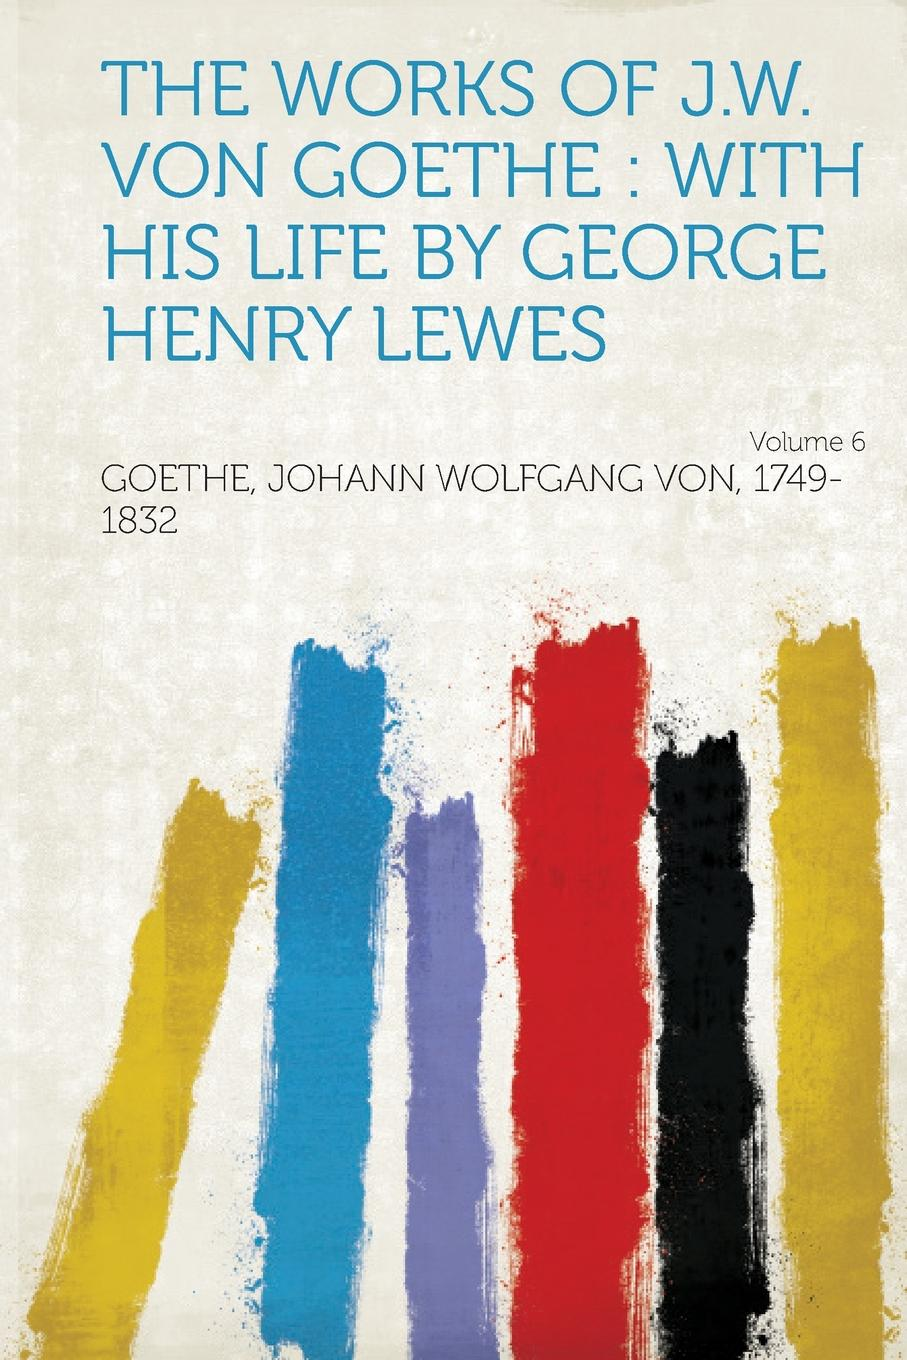 Goethe Johann Wolfgang von 1749-1832 The Works of J.W. Von Goethe. With His Life by George Henry Lewes Volume 6 george henry lewes the life of goethe